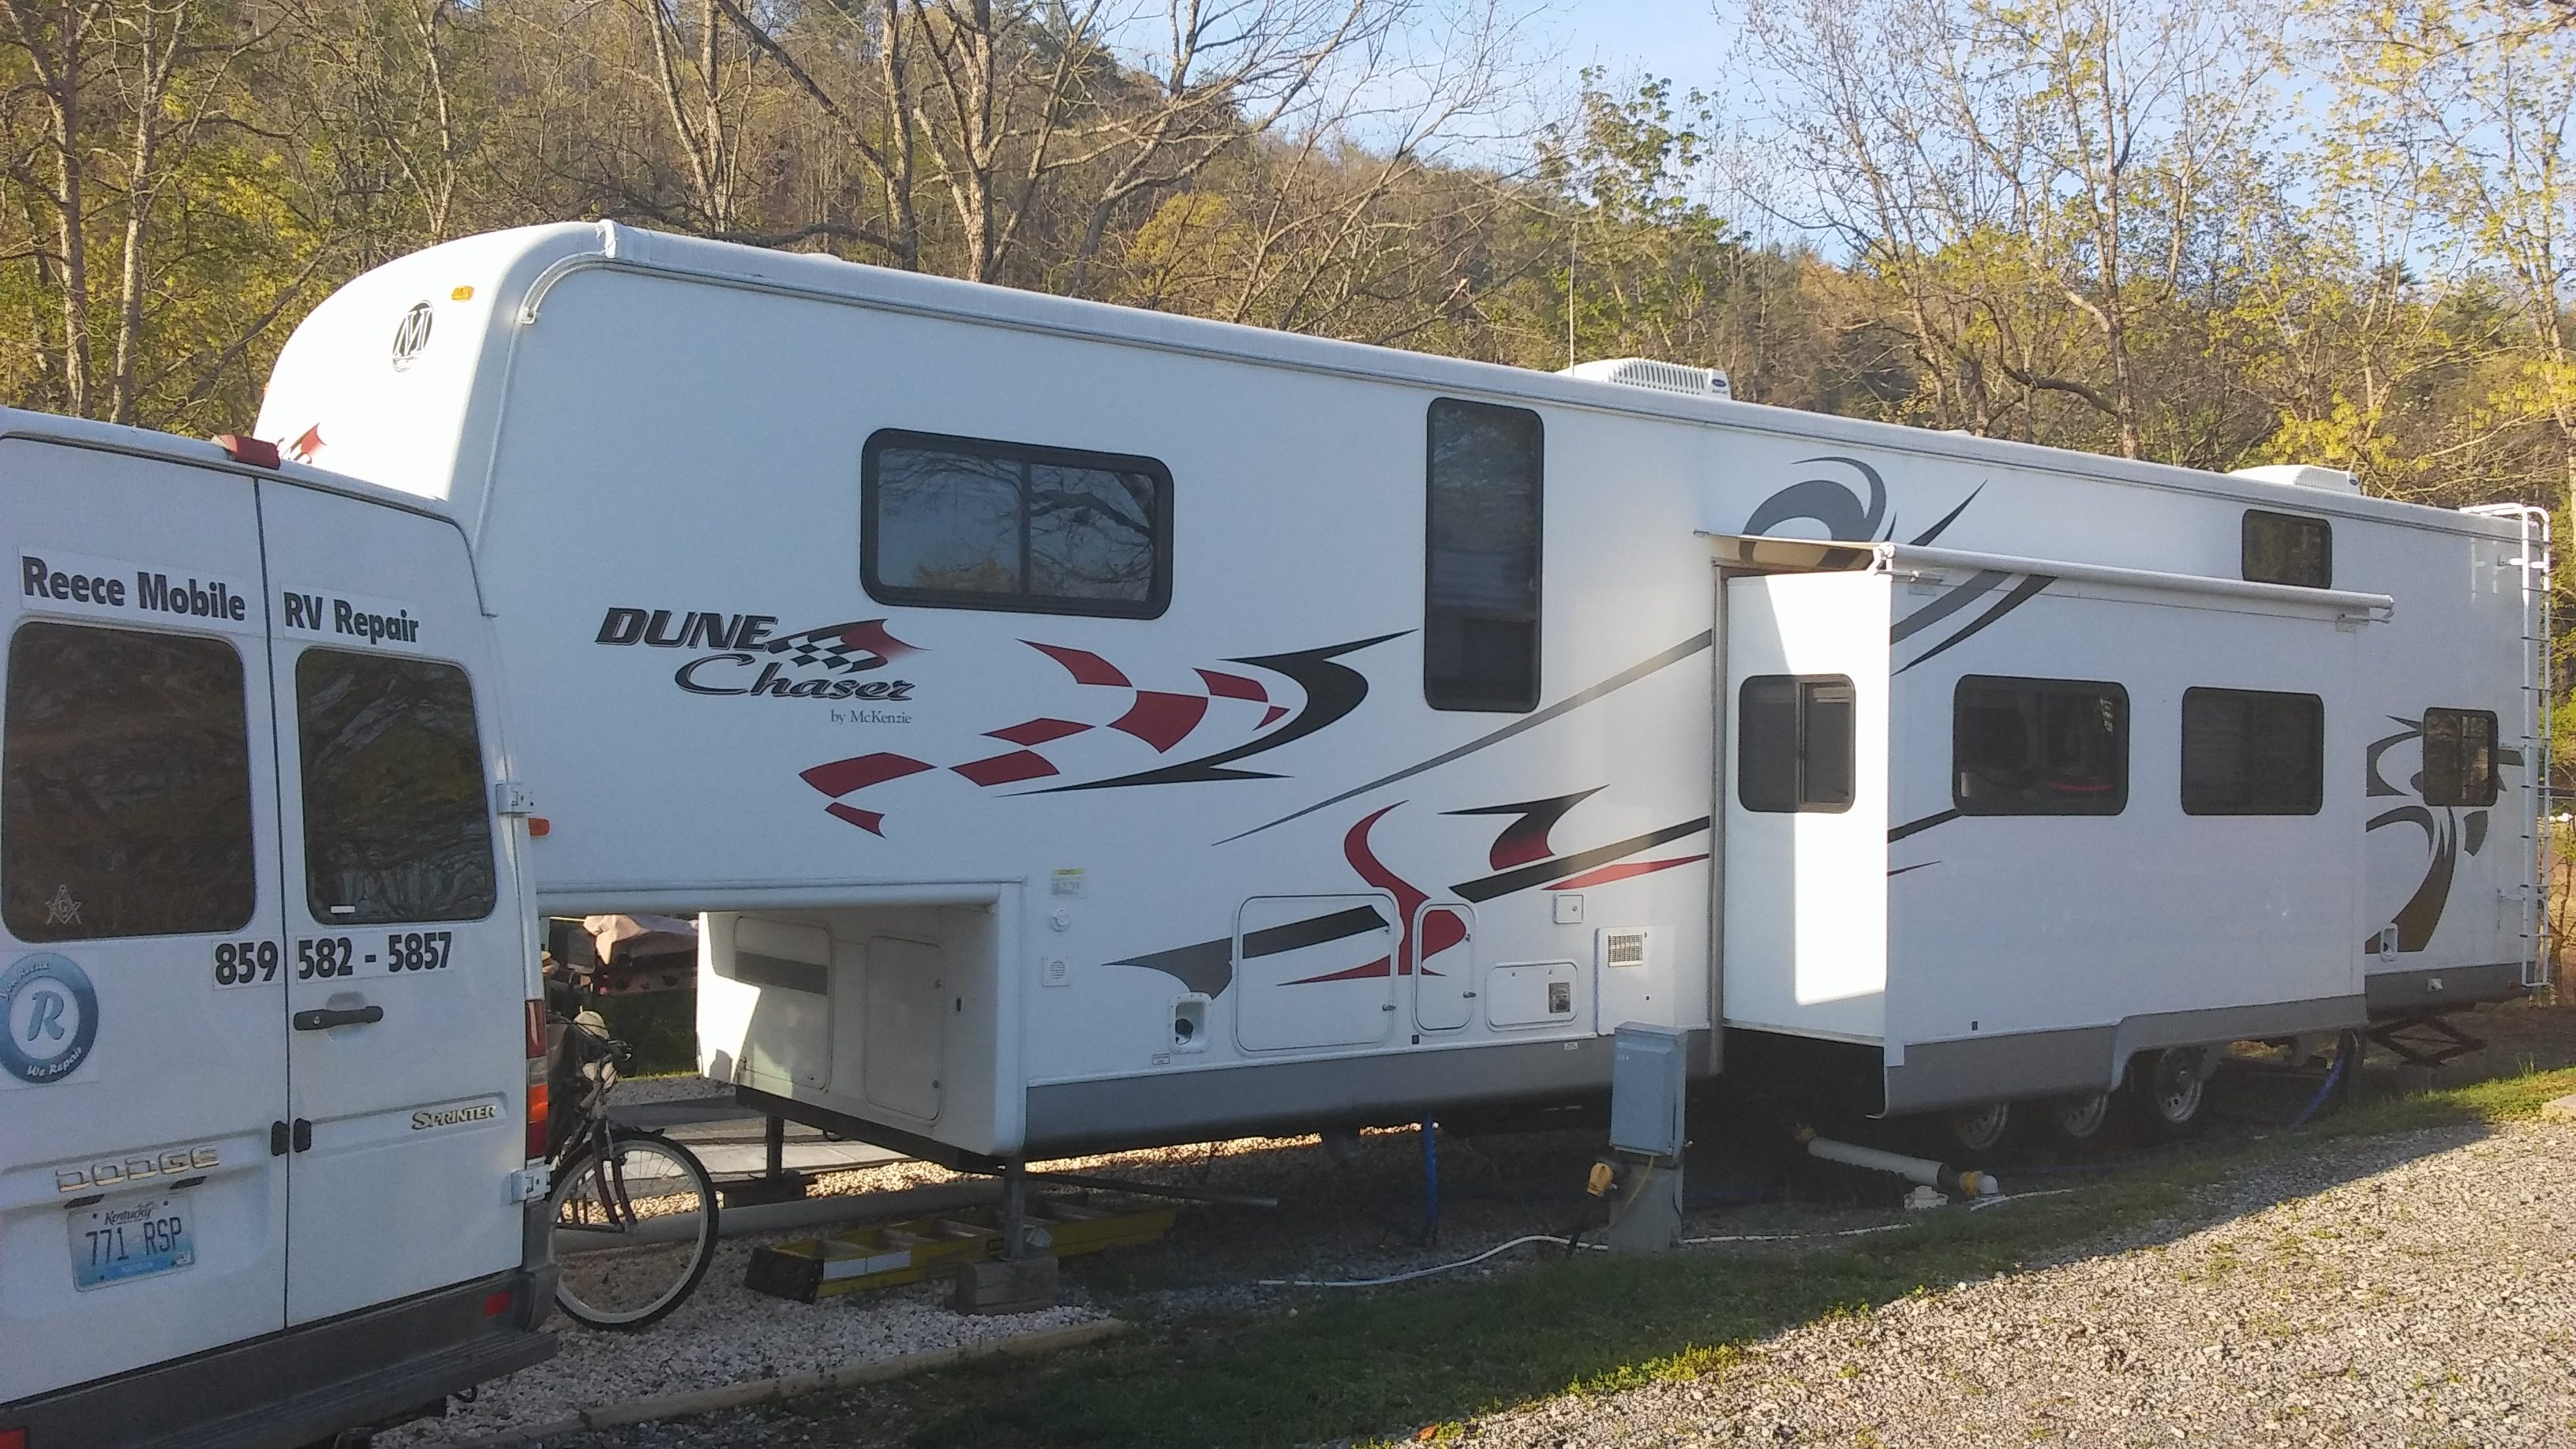 Reece Mobile RV Repair | Pigeon Forge, Tennessee | Call (859